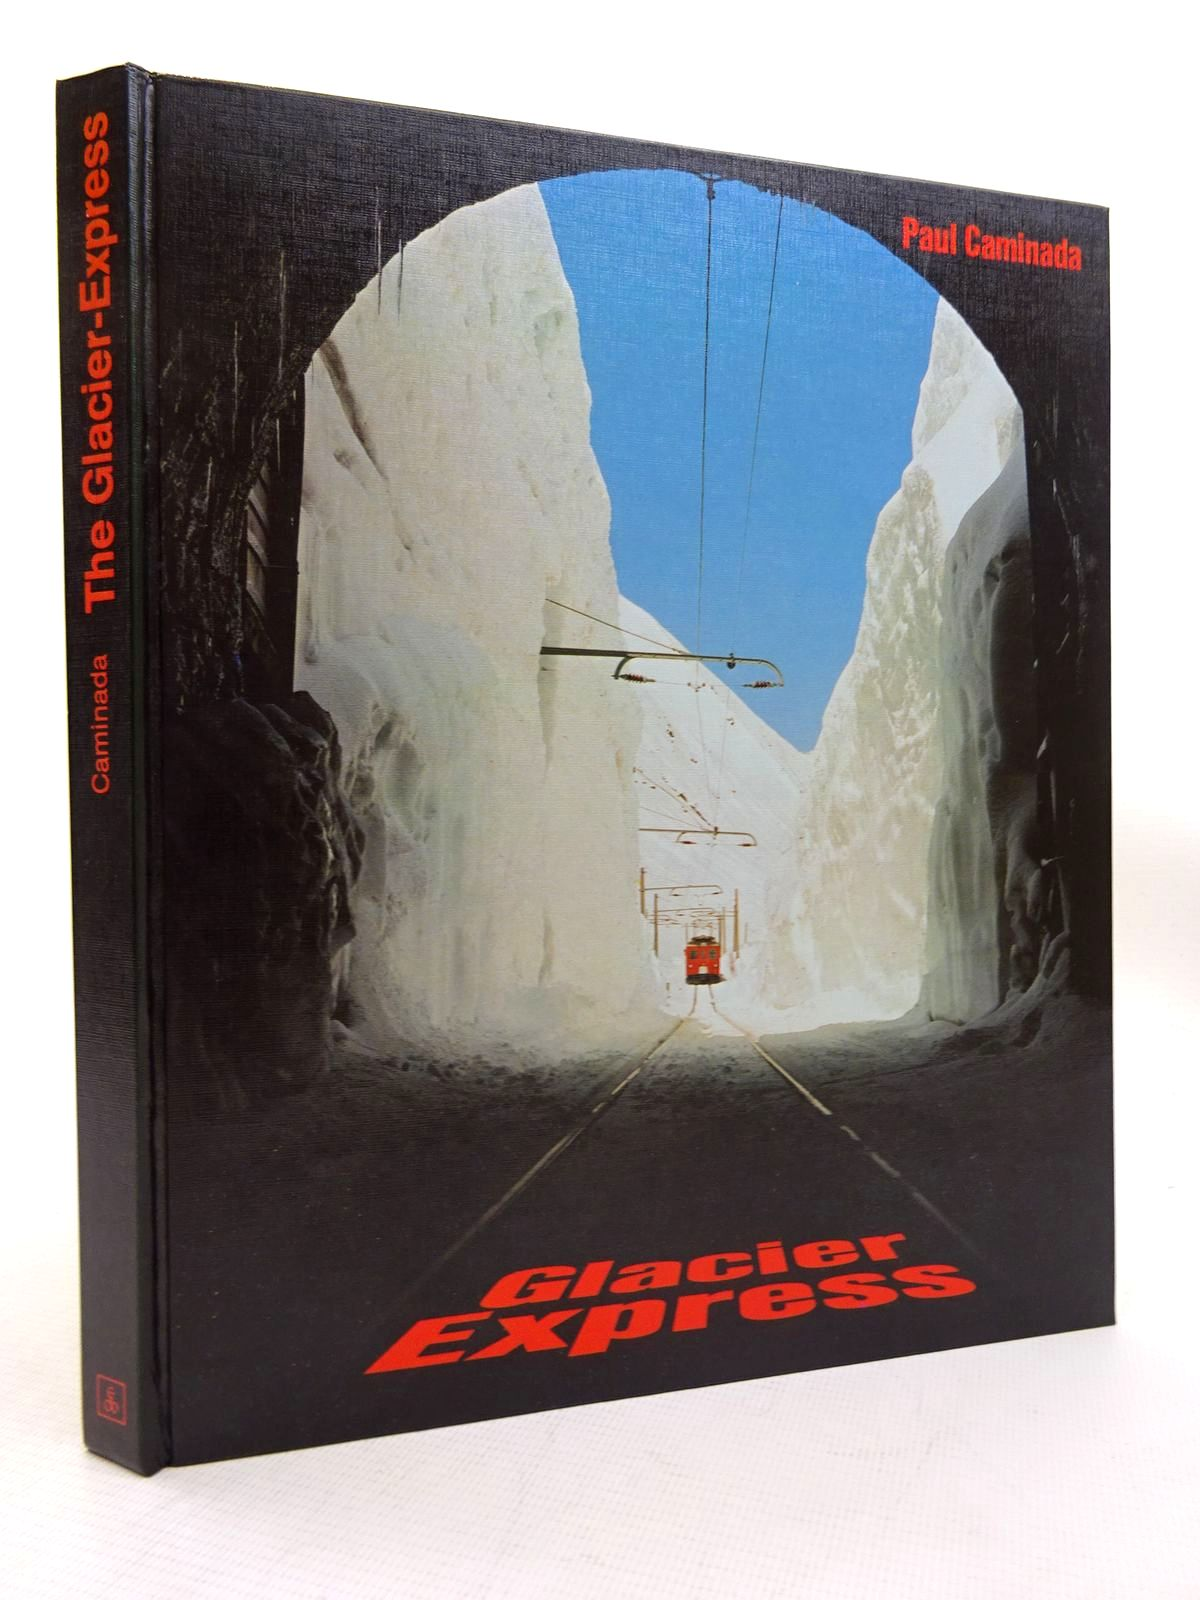 Photo of THE GLACIER-EXPRESS written by Caminada, Paul published by Desertina Verlag (STOCK CODE: 1816313)  for sale by Stella & Rose's Books